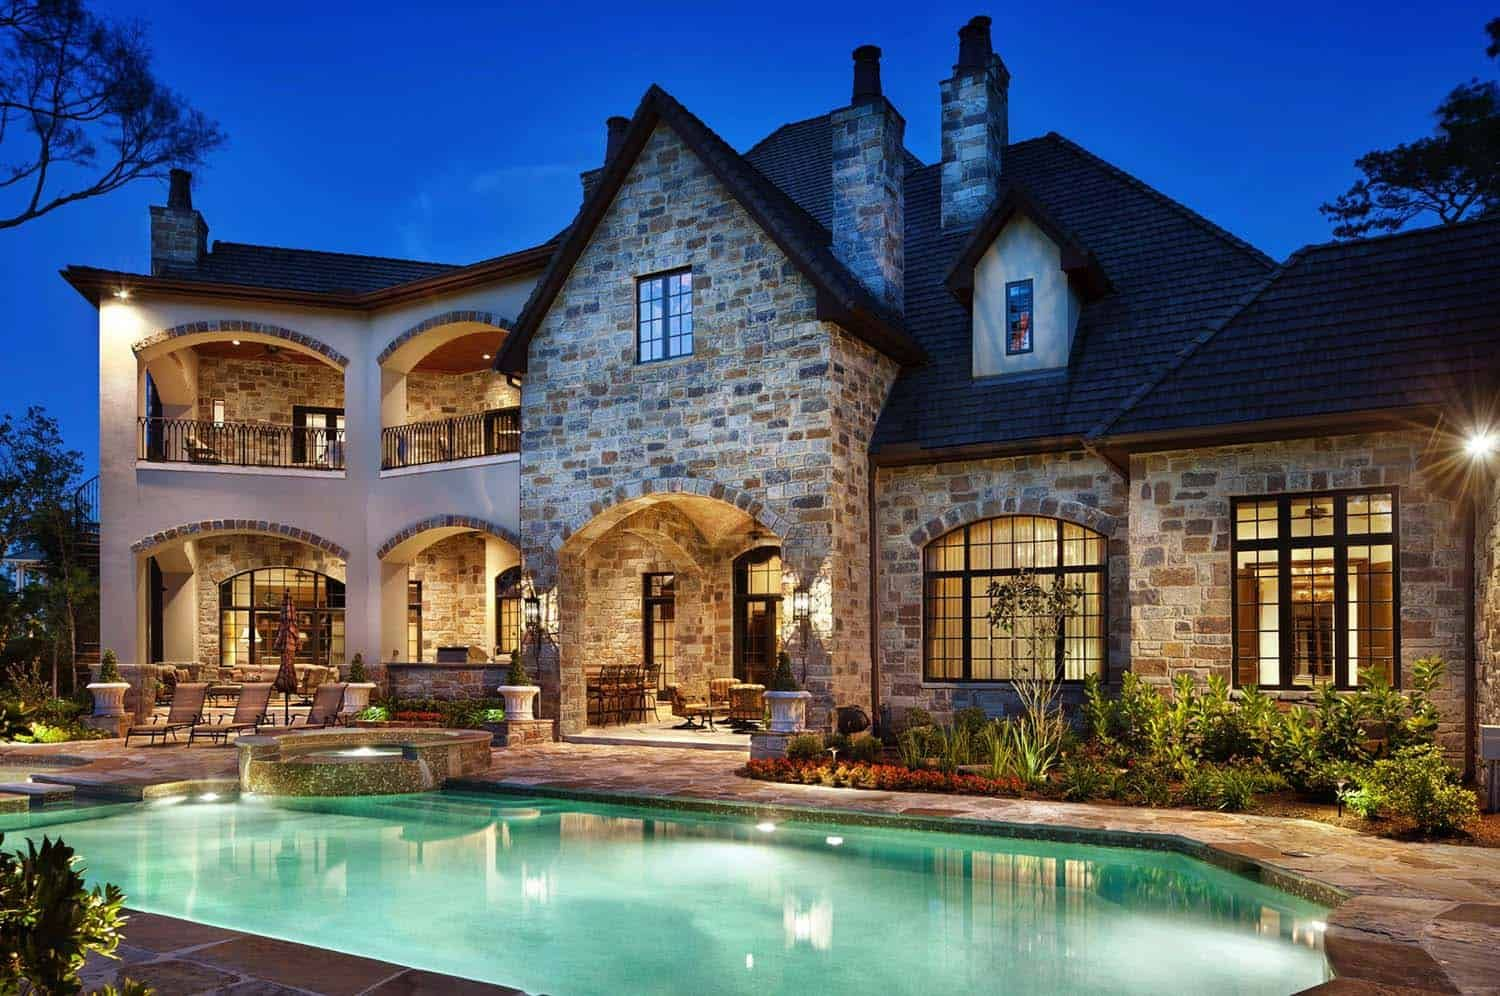 Dream House Tour English Manor House With Opulent Details In Texas English Manor Houses English Manor Dream House